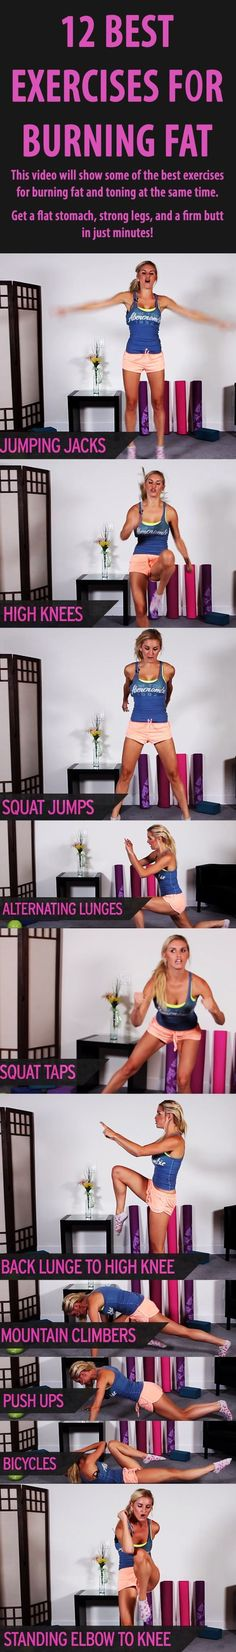 Calorie burning workout: 12 absolutely best exercises for BURNING FAT. #fatburn #weightloss #loseweight #bellyfat #fatburningworkout by elise